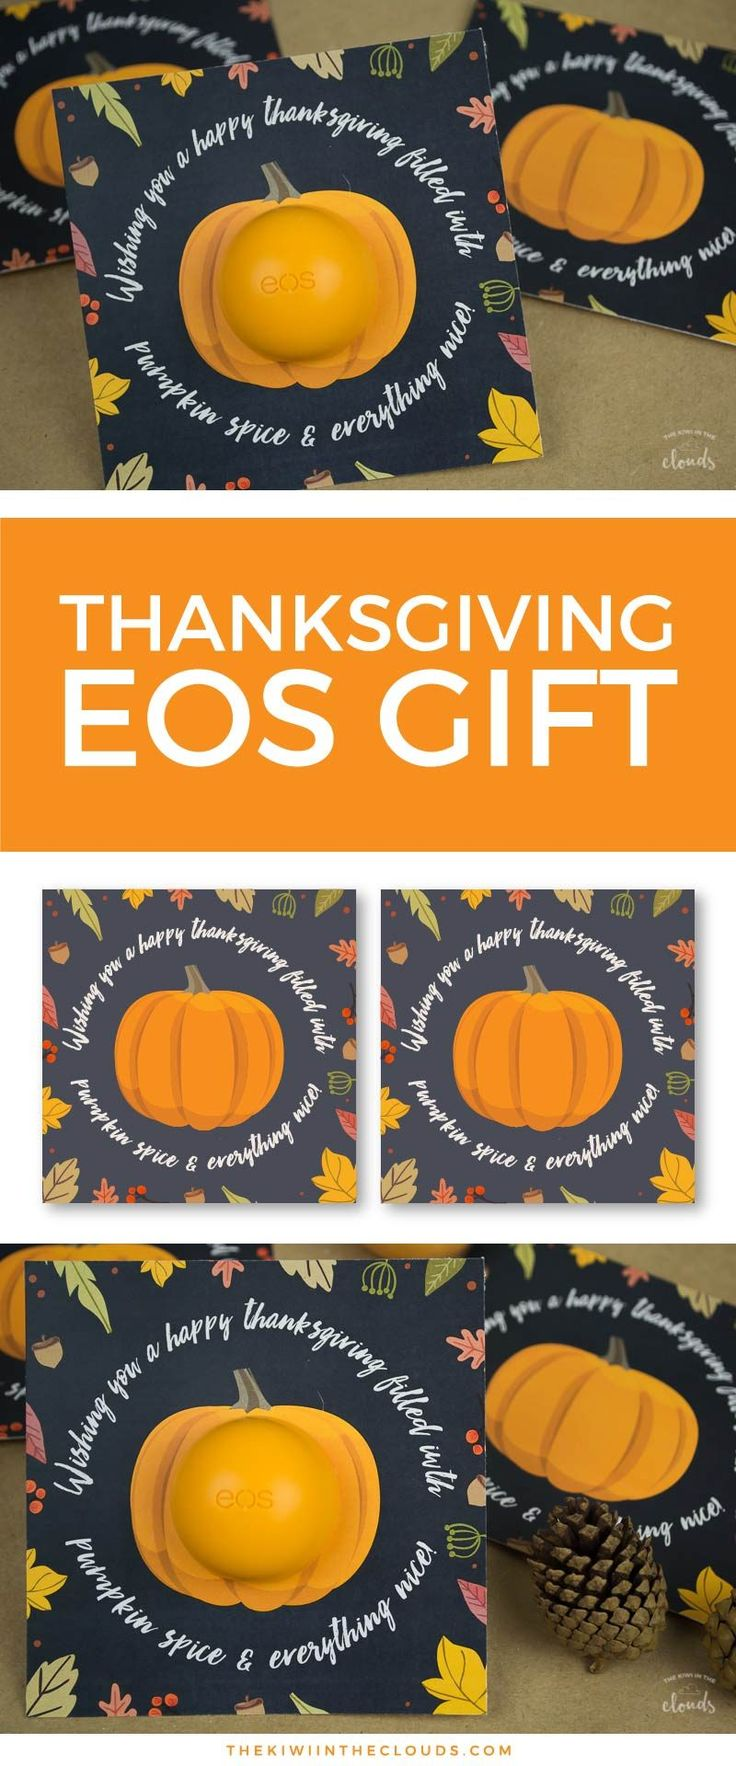 Thanksgiving Gifts | EOS lip balm gift | Small Gift Idea